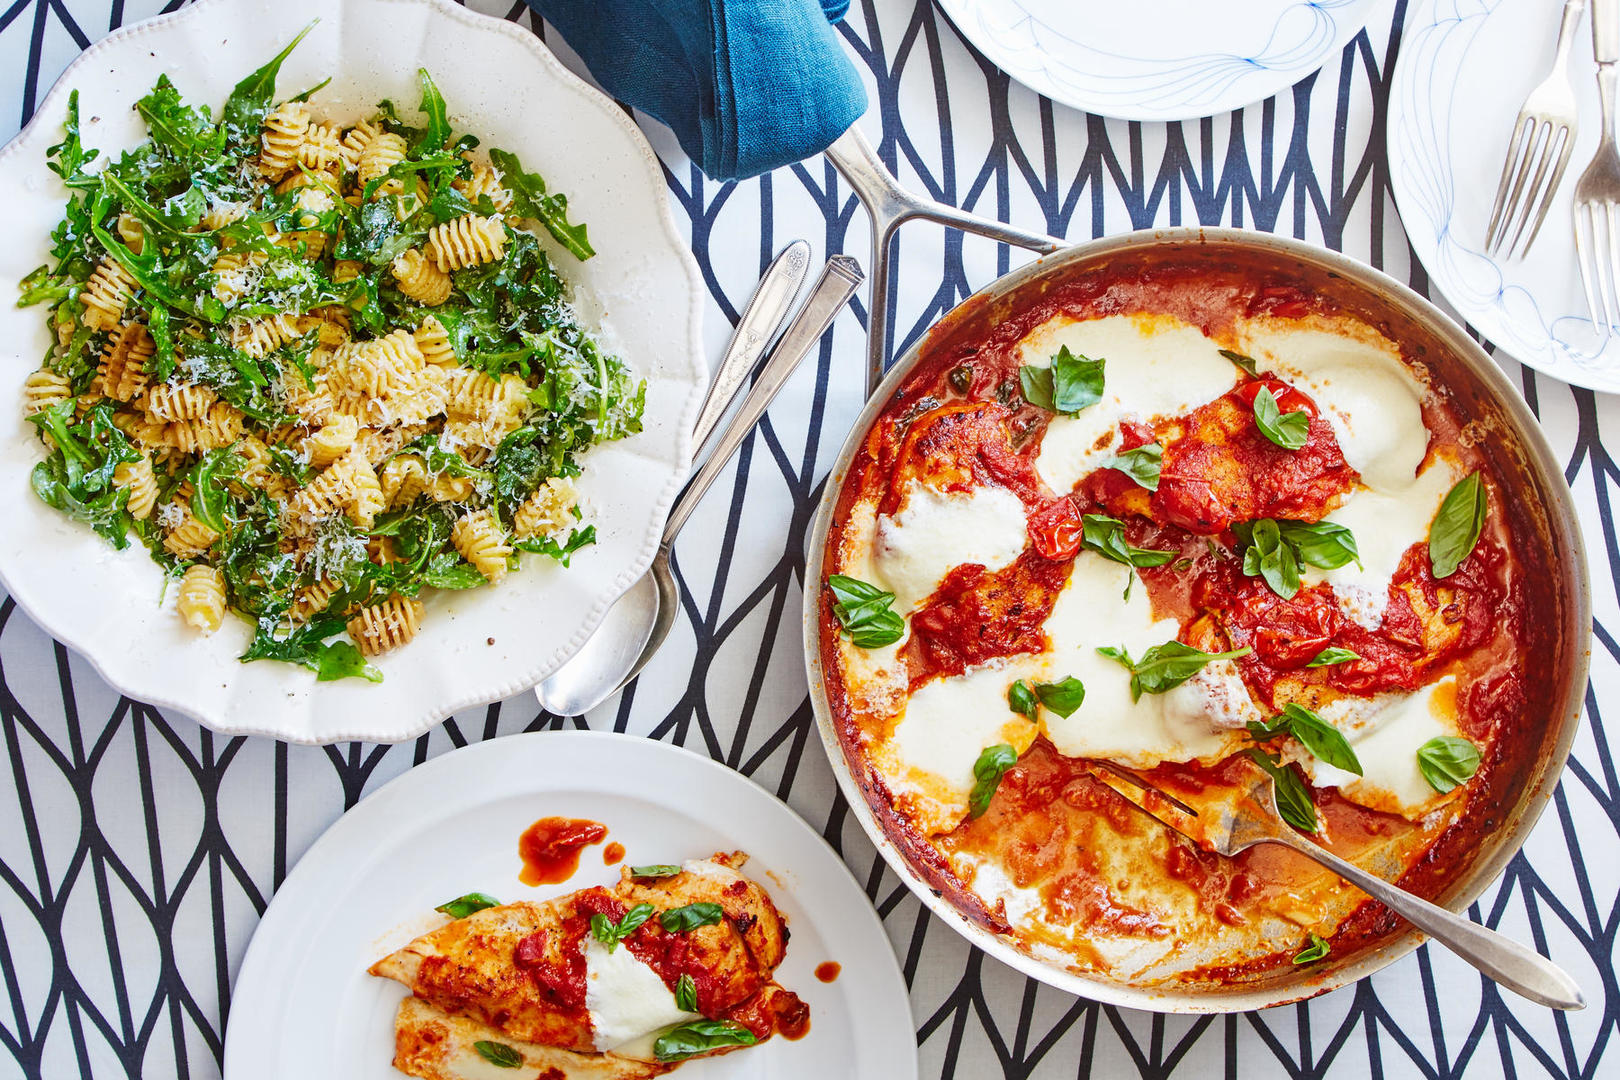 A Few Dishes for Every Palate